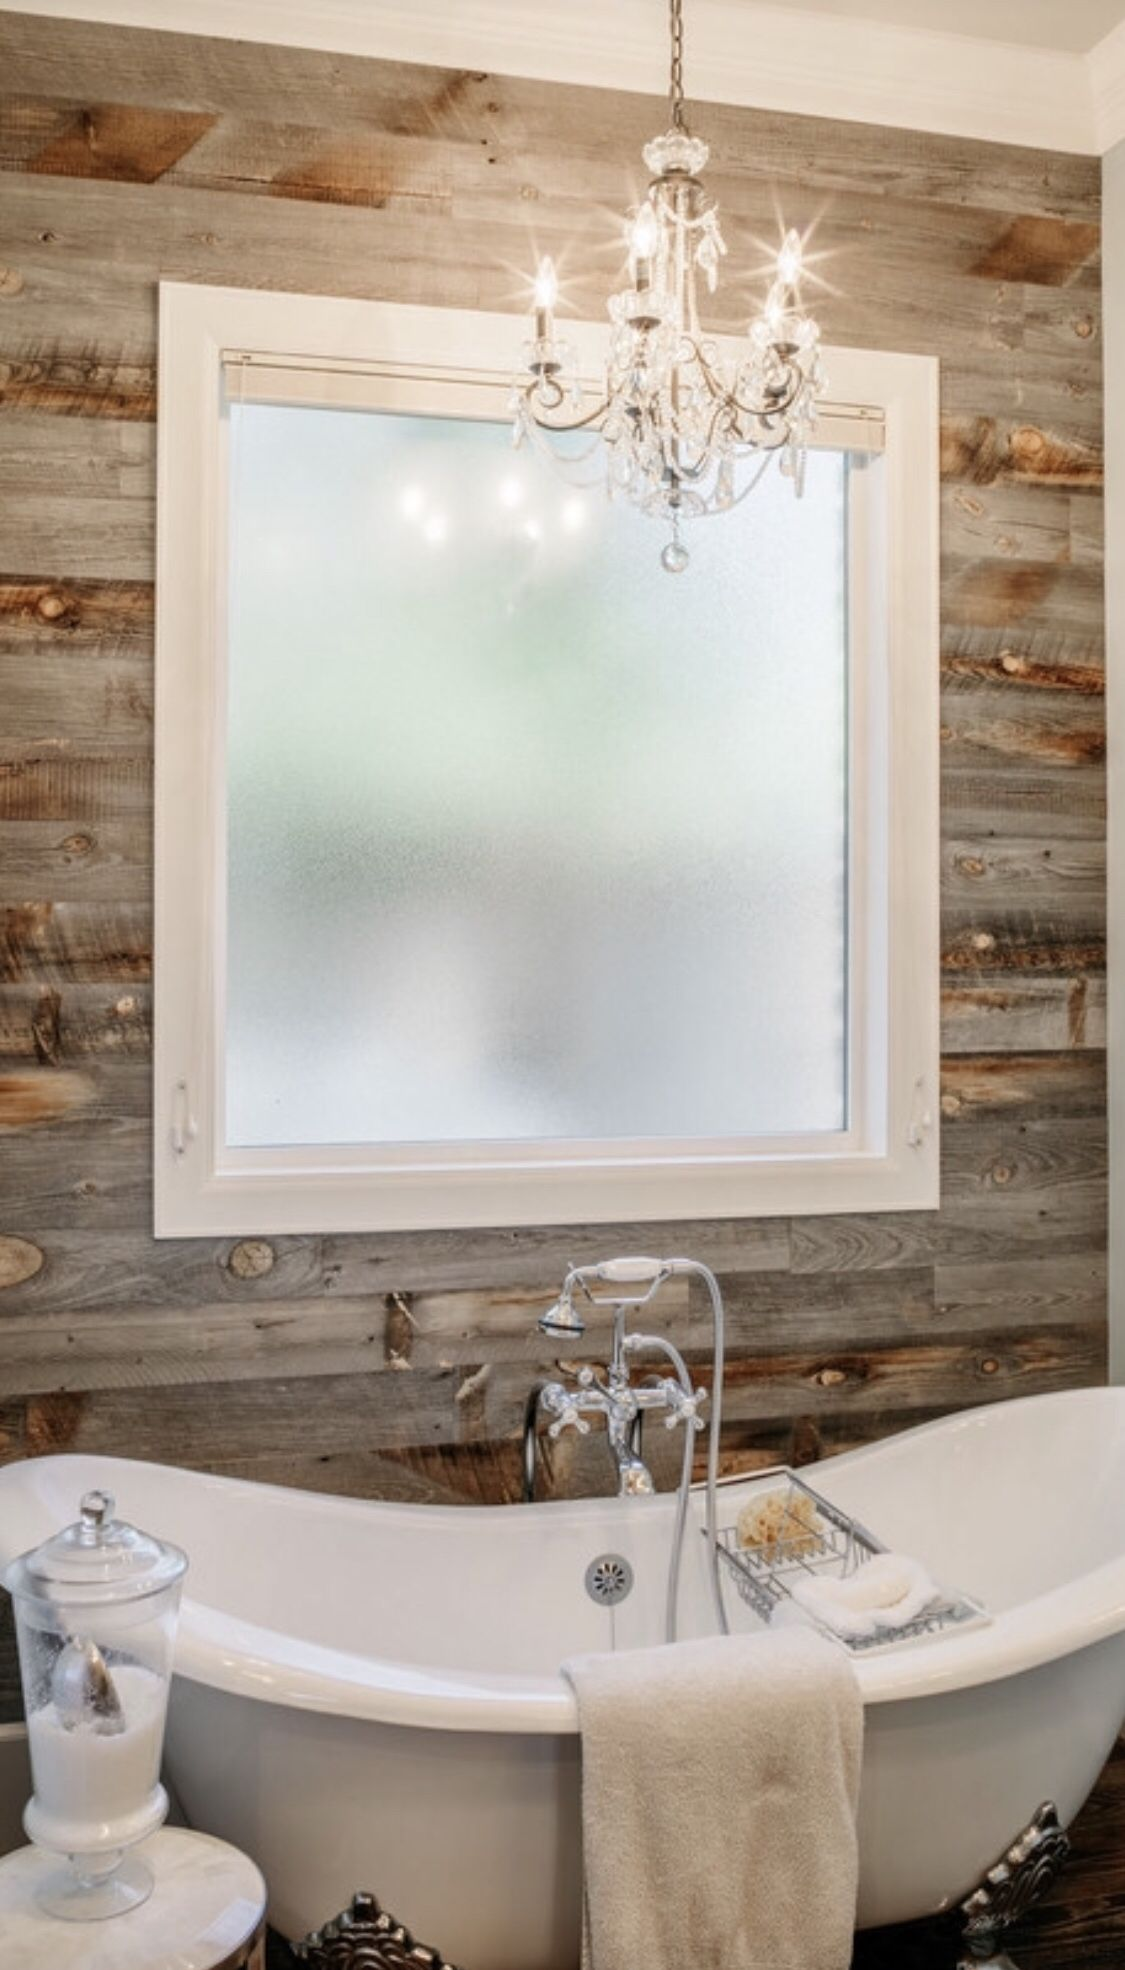 Prime Perfect Amount Of Rustic Glam Bathrooms In 2019 Diy Home Interior And Landscaping Ologienasavecom